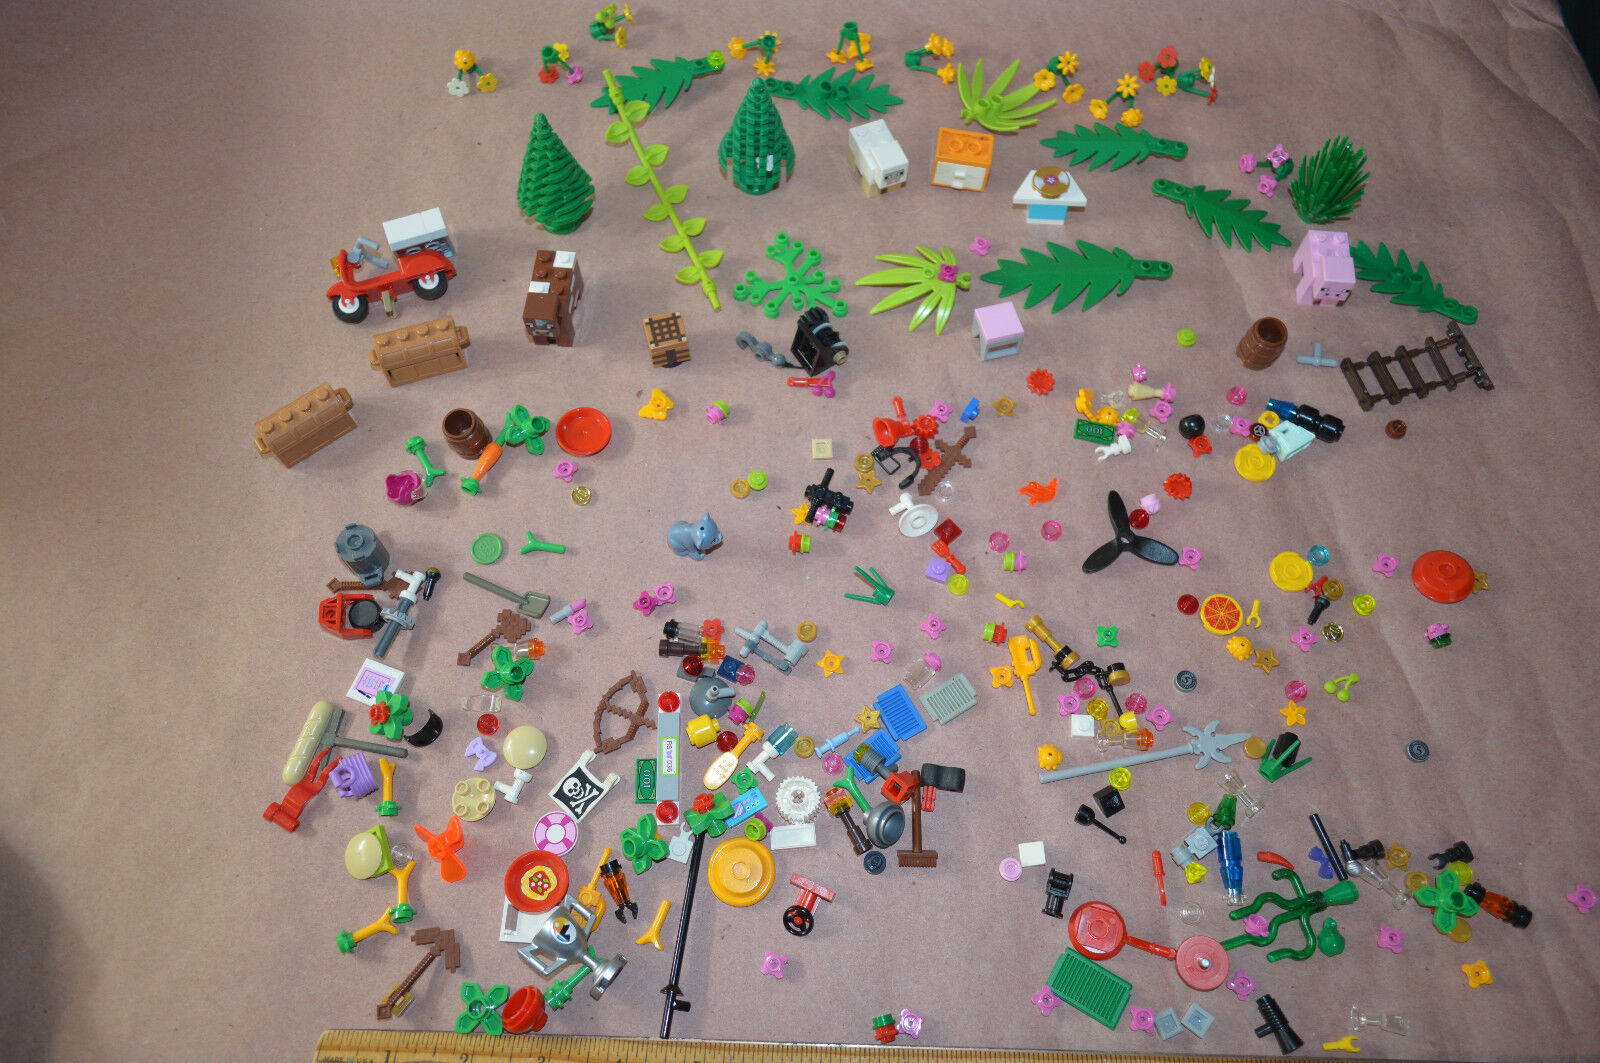 LEGO Acessories Chest Weapons Trees Propeller Lot Mini Figs 6 oz Of Pieces  1918